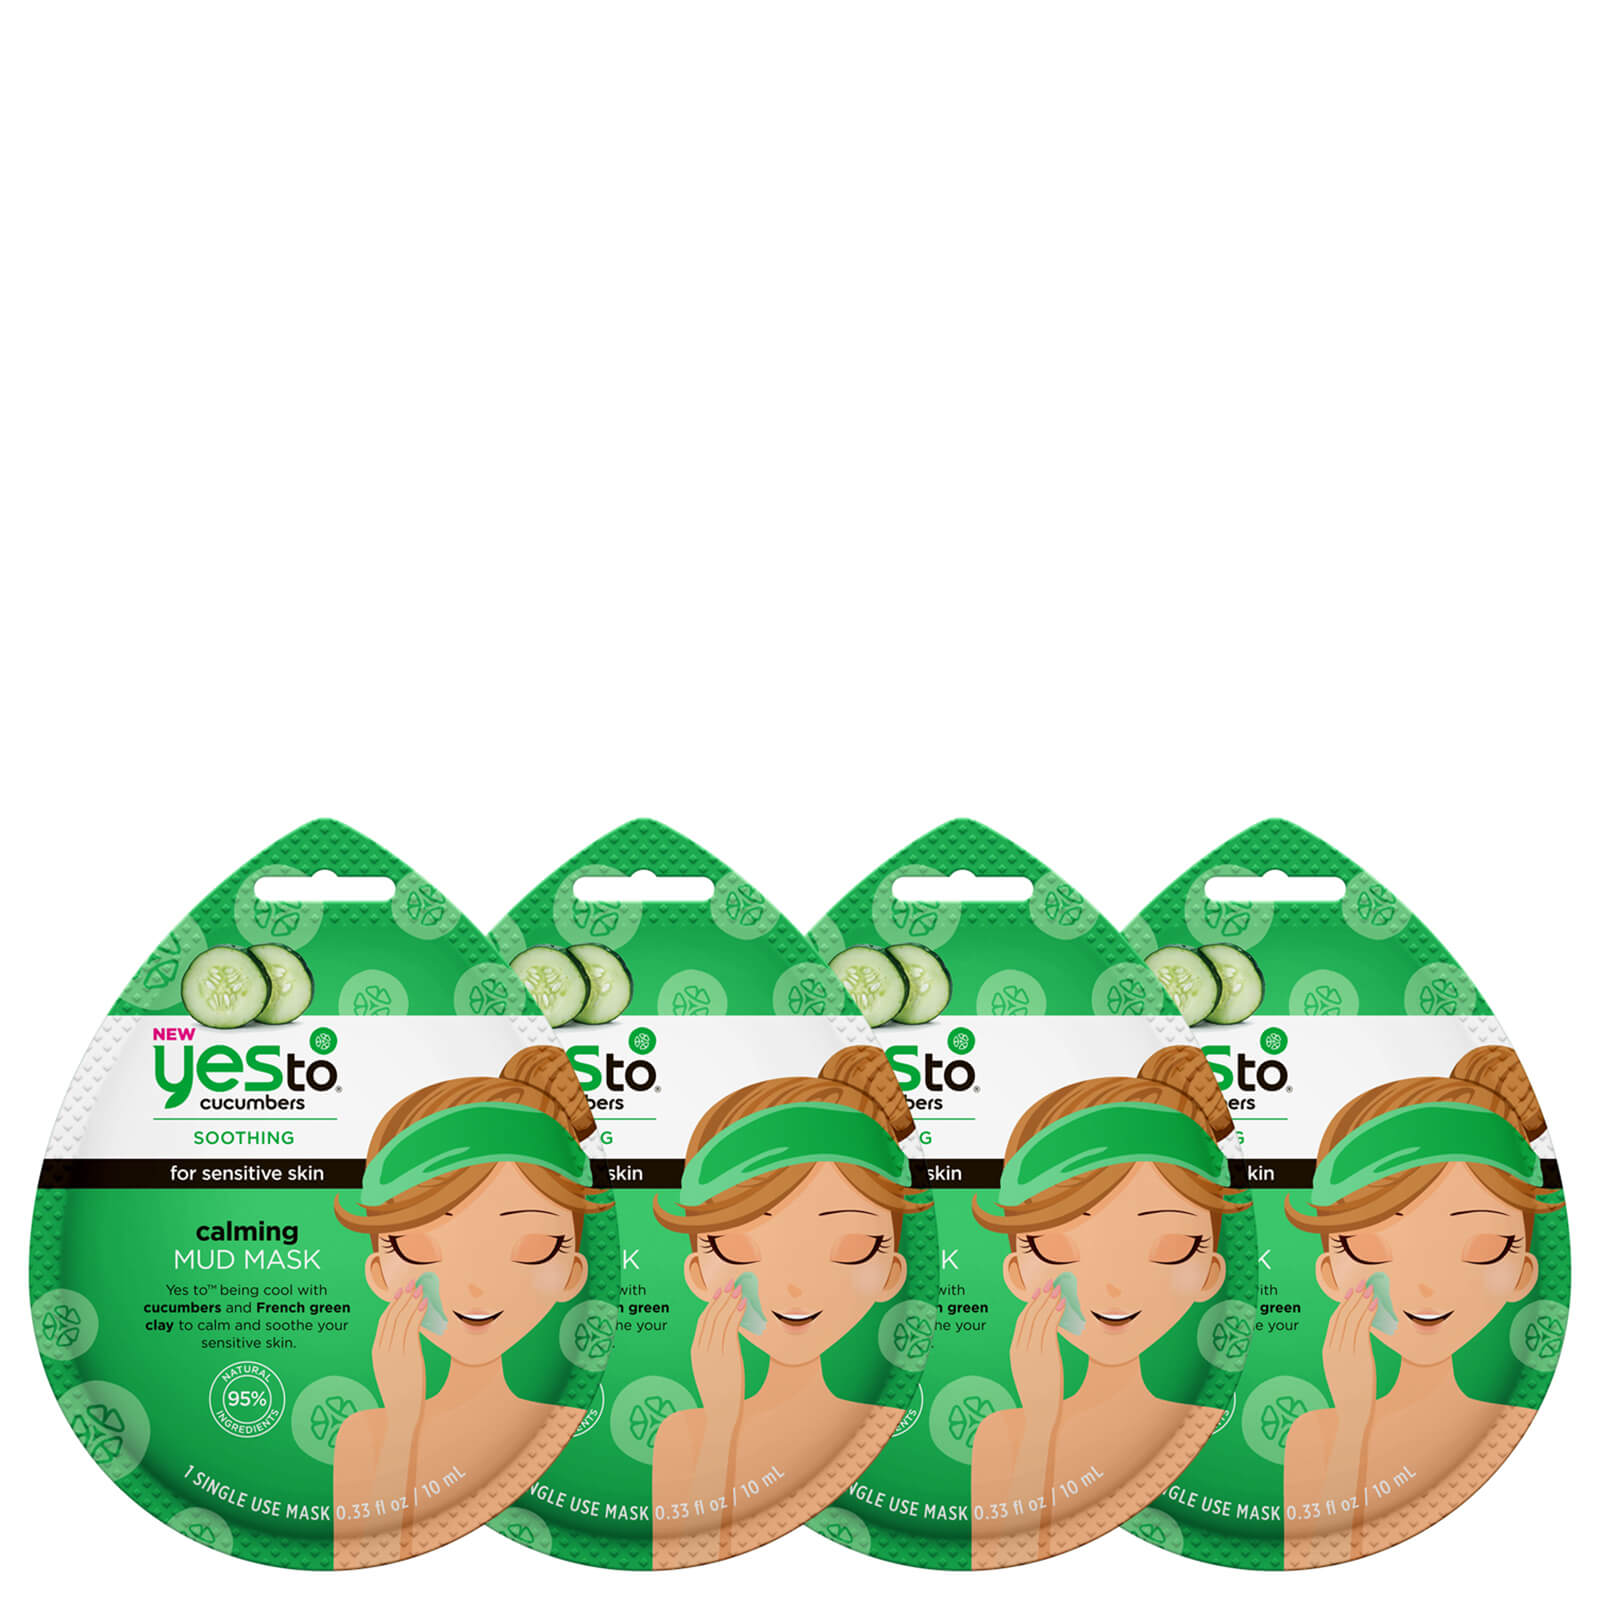 Купить Yes to Cucumber Calming Mud Single Use Mask (Pack of 4)